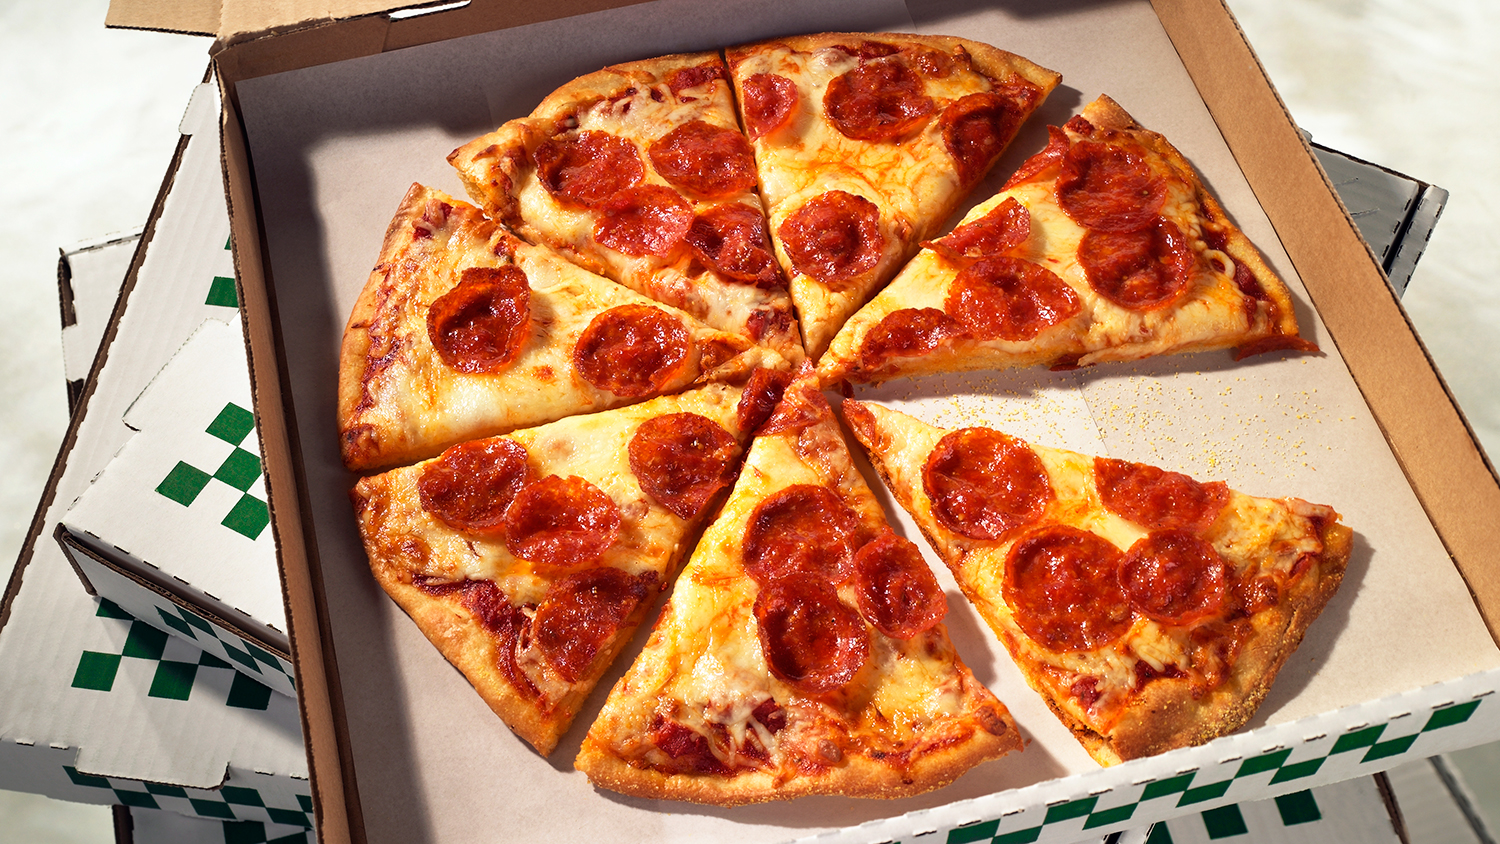 Pregnant Women Believe a Pizza Induces Labor—And They're Lining Up For It